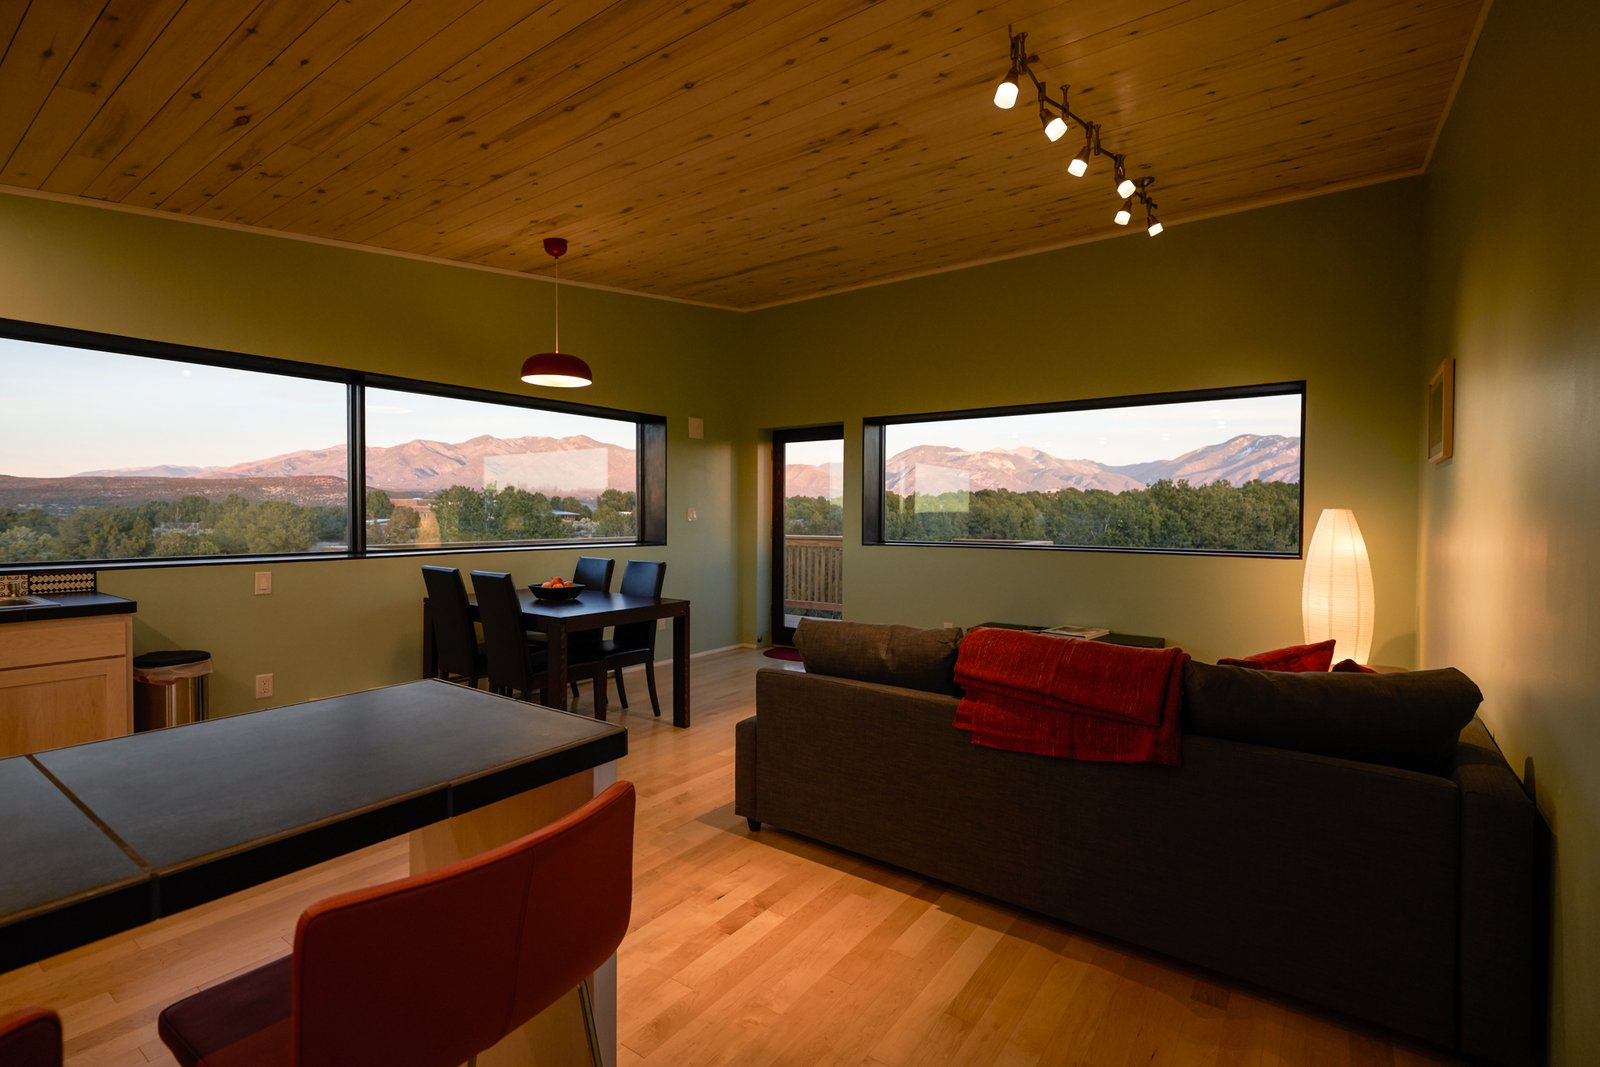 Living Room Expansive windows capturing the views of the Sange De Christo mountain Range, the Arroyo Hondo Valley and the Rio Grande.  SkyNest by Joaquin Karcher